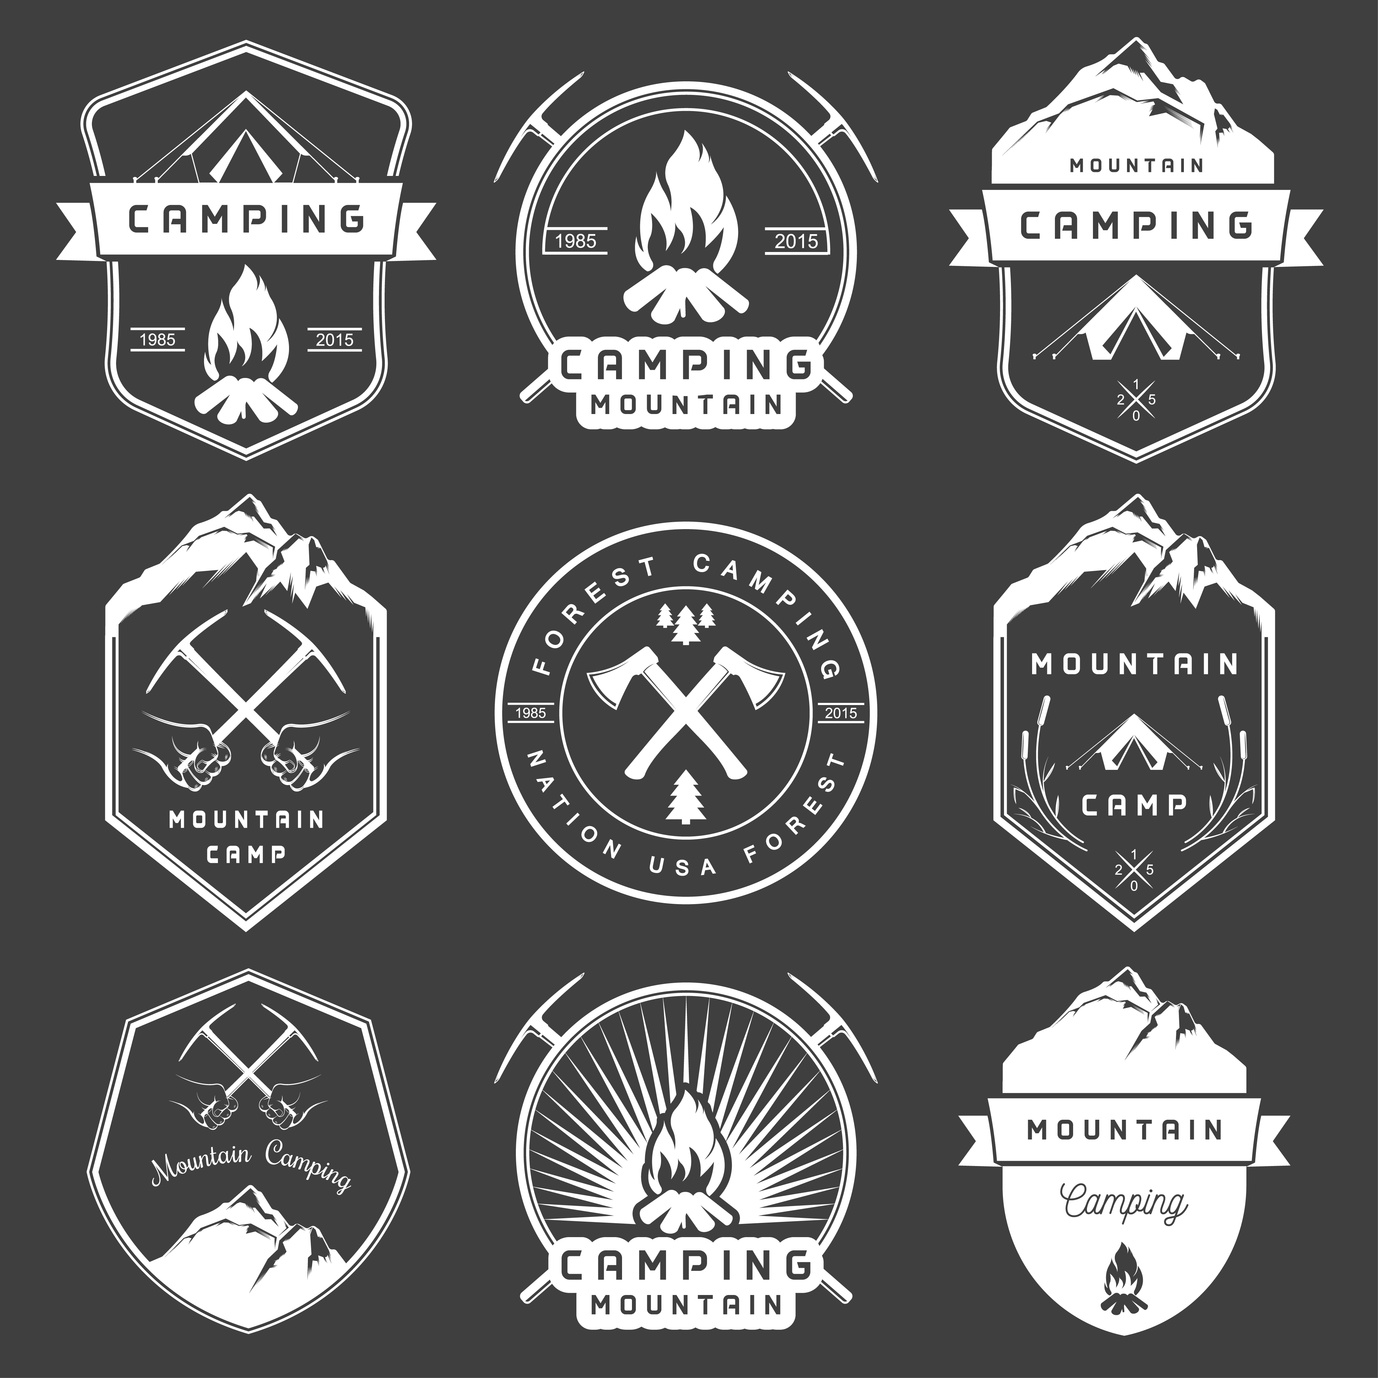 5 Smart Logo Design Tips for Camping Supplies Companies ...